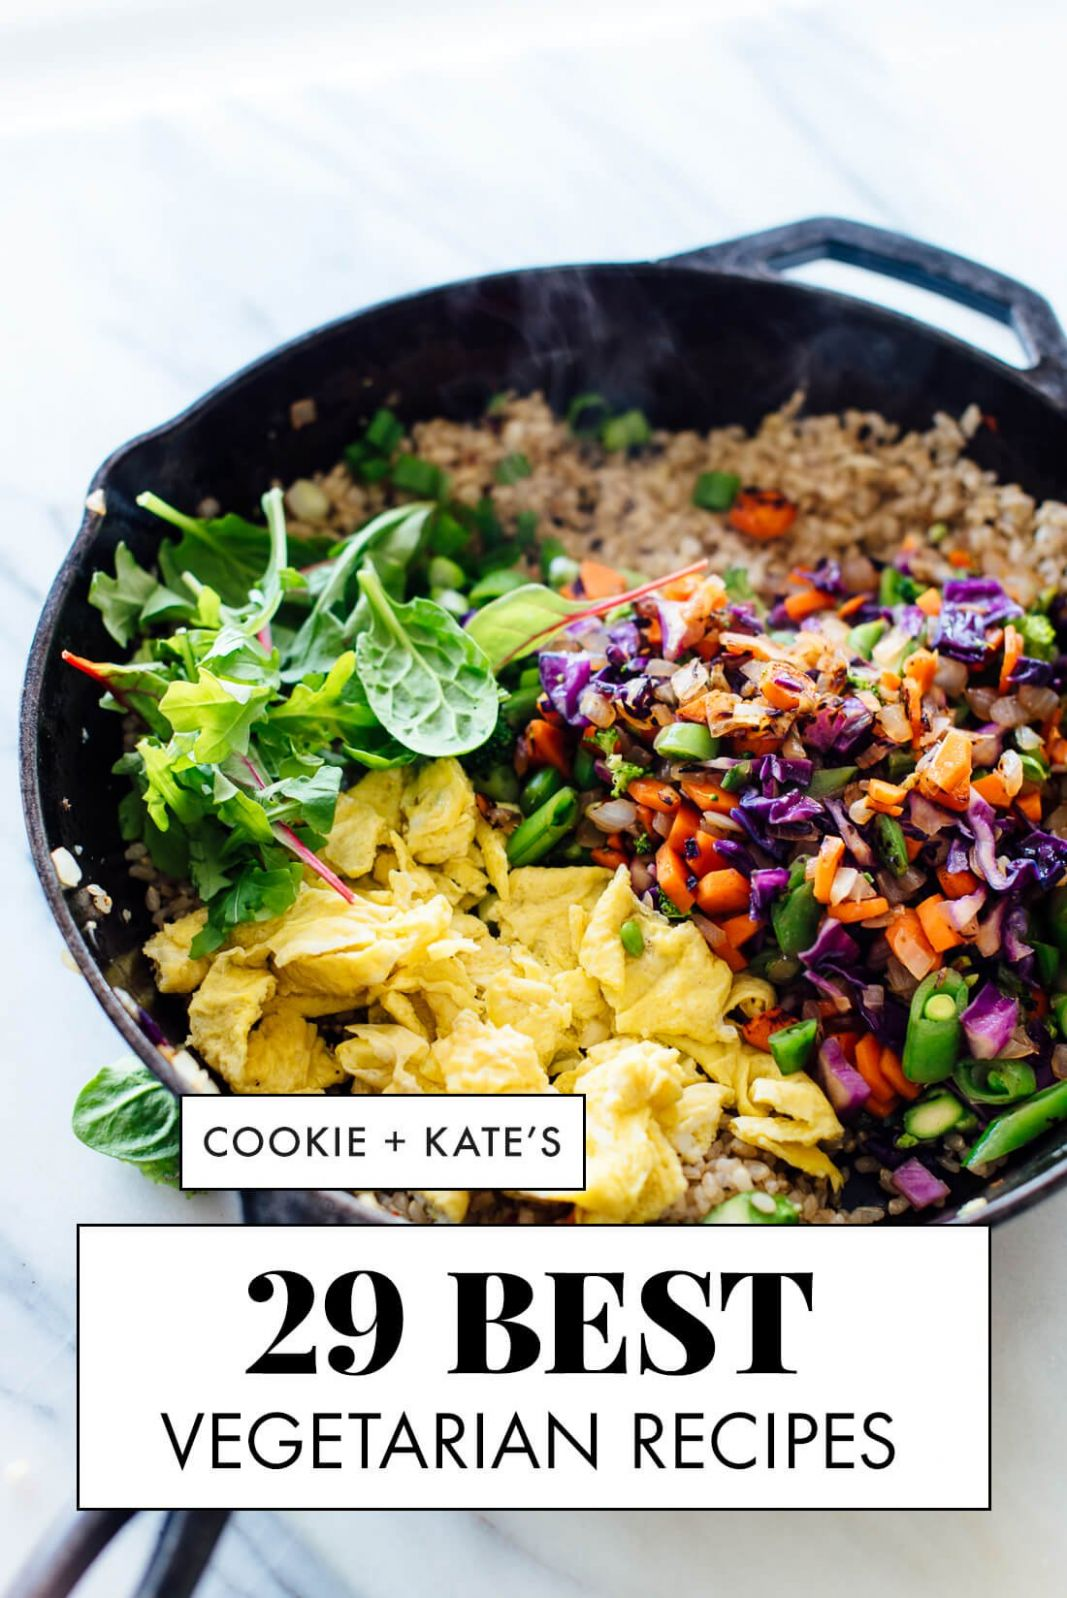 12 Best Vegetarian Recipes - Cookie and Kate - Healthy Recipes Vegetarian Blog